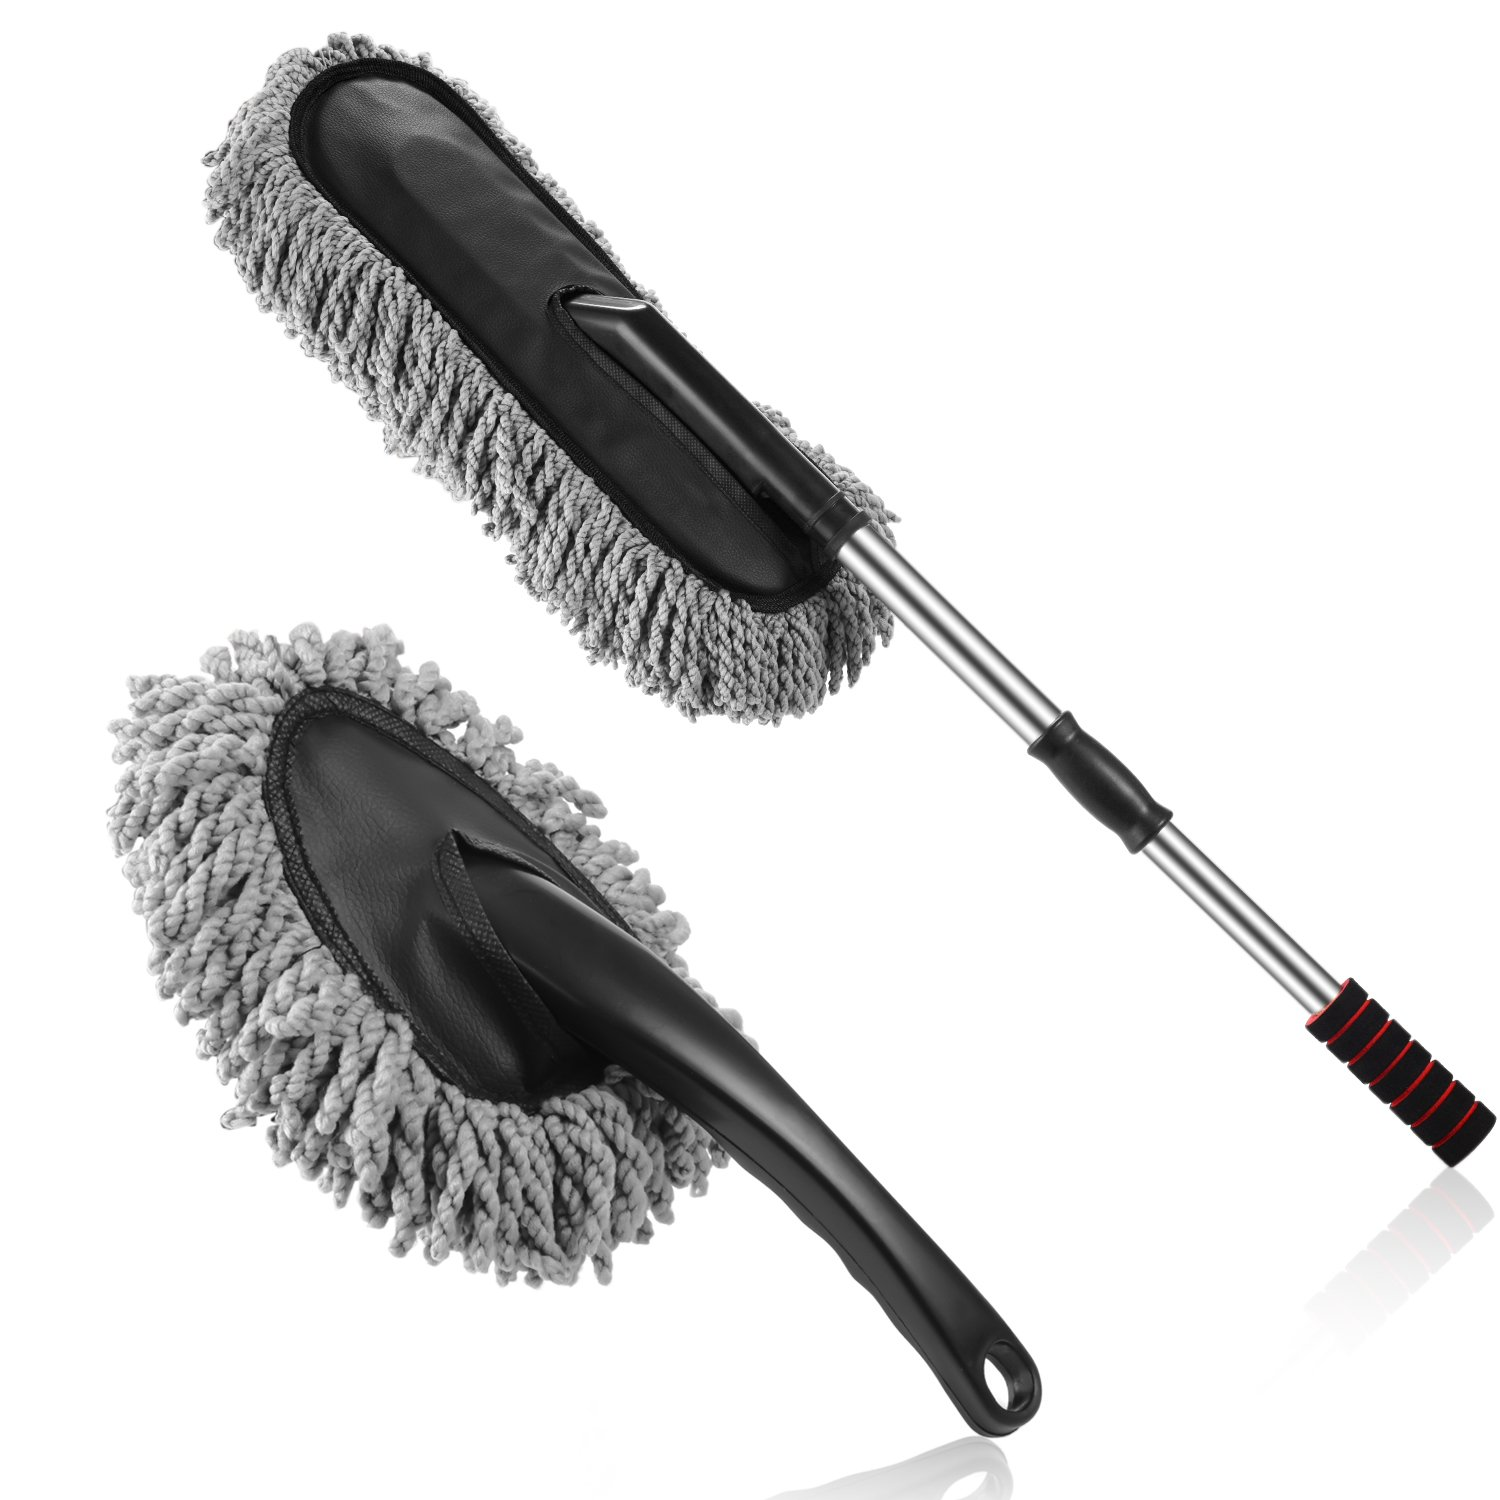 Multipurpose Microfiber Car Duster Brush 2 Pieces Kit with Long Extendable Handle for Car and Home